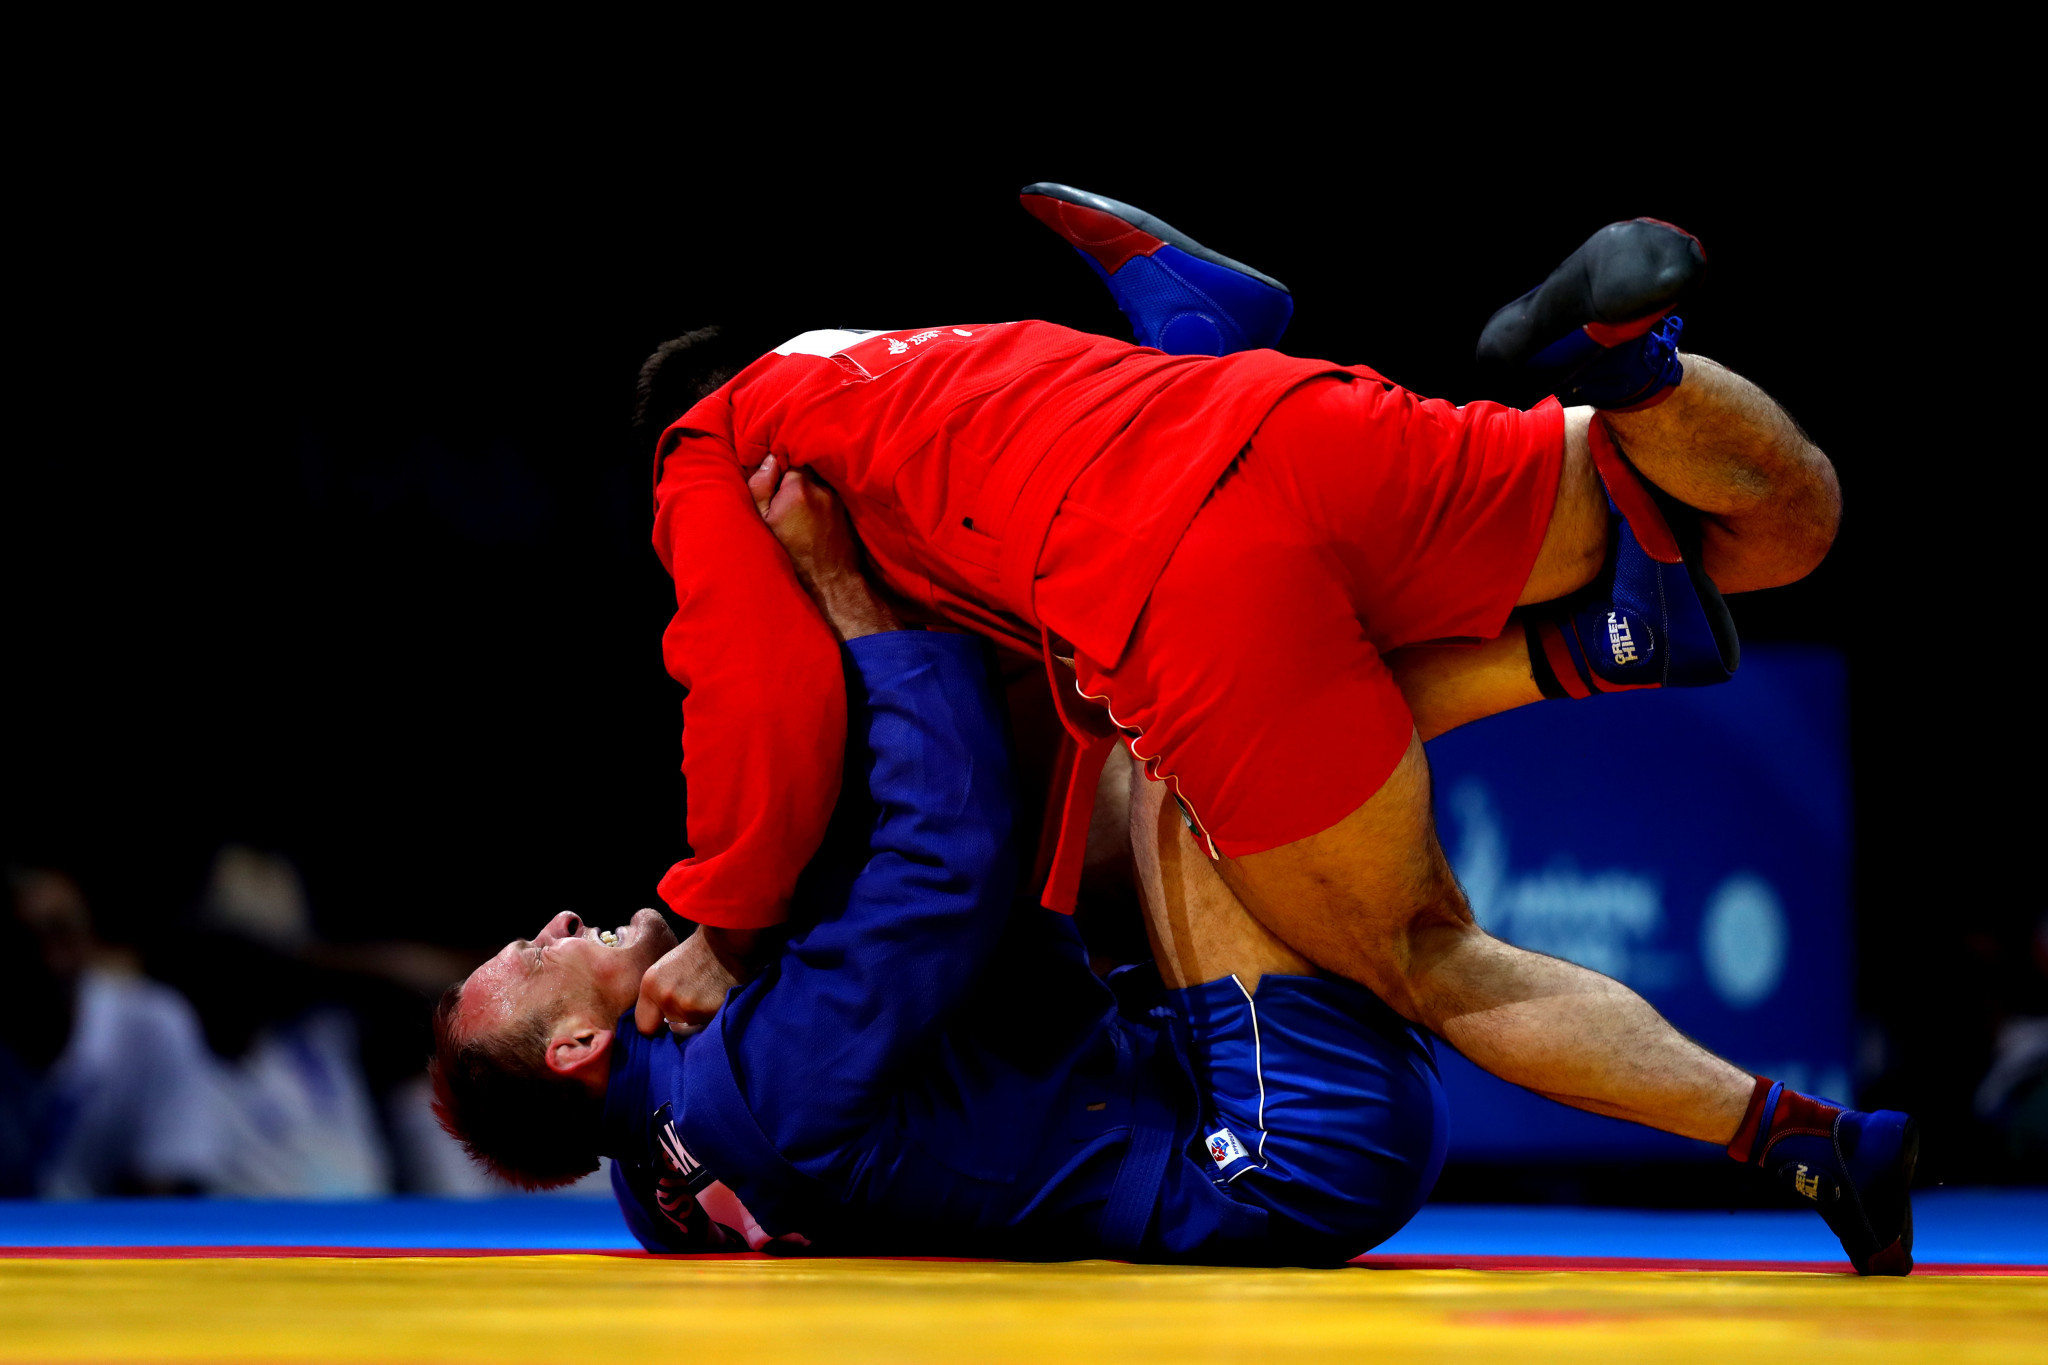 Other sports were taking place across the city, with sambo concluding at the Sports Palace ©Minsk 2019